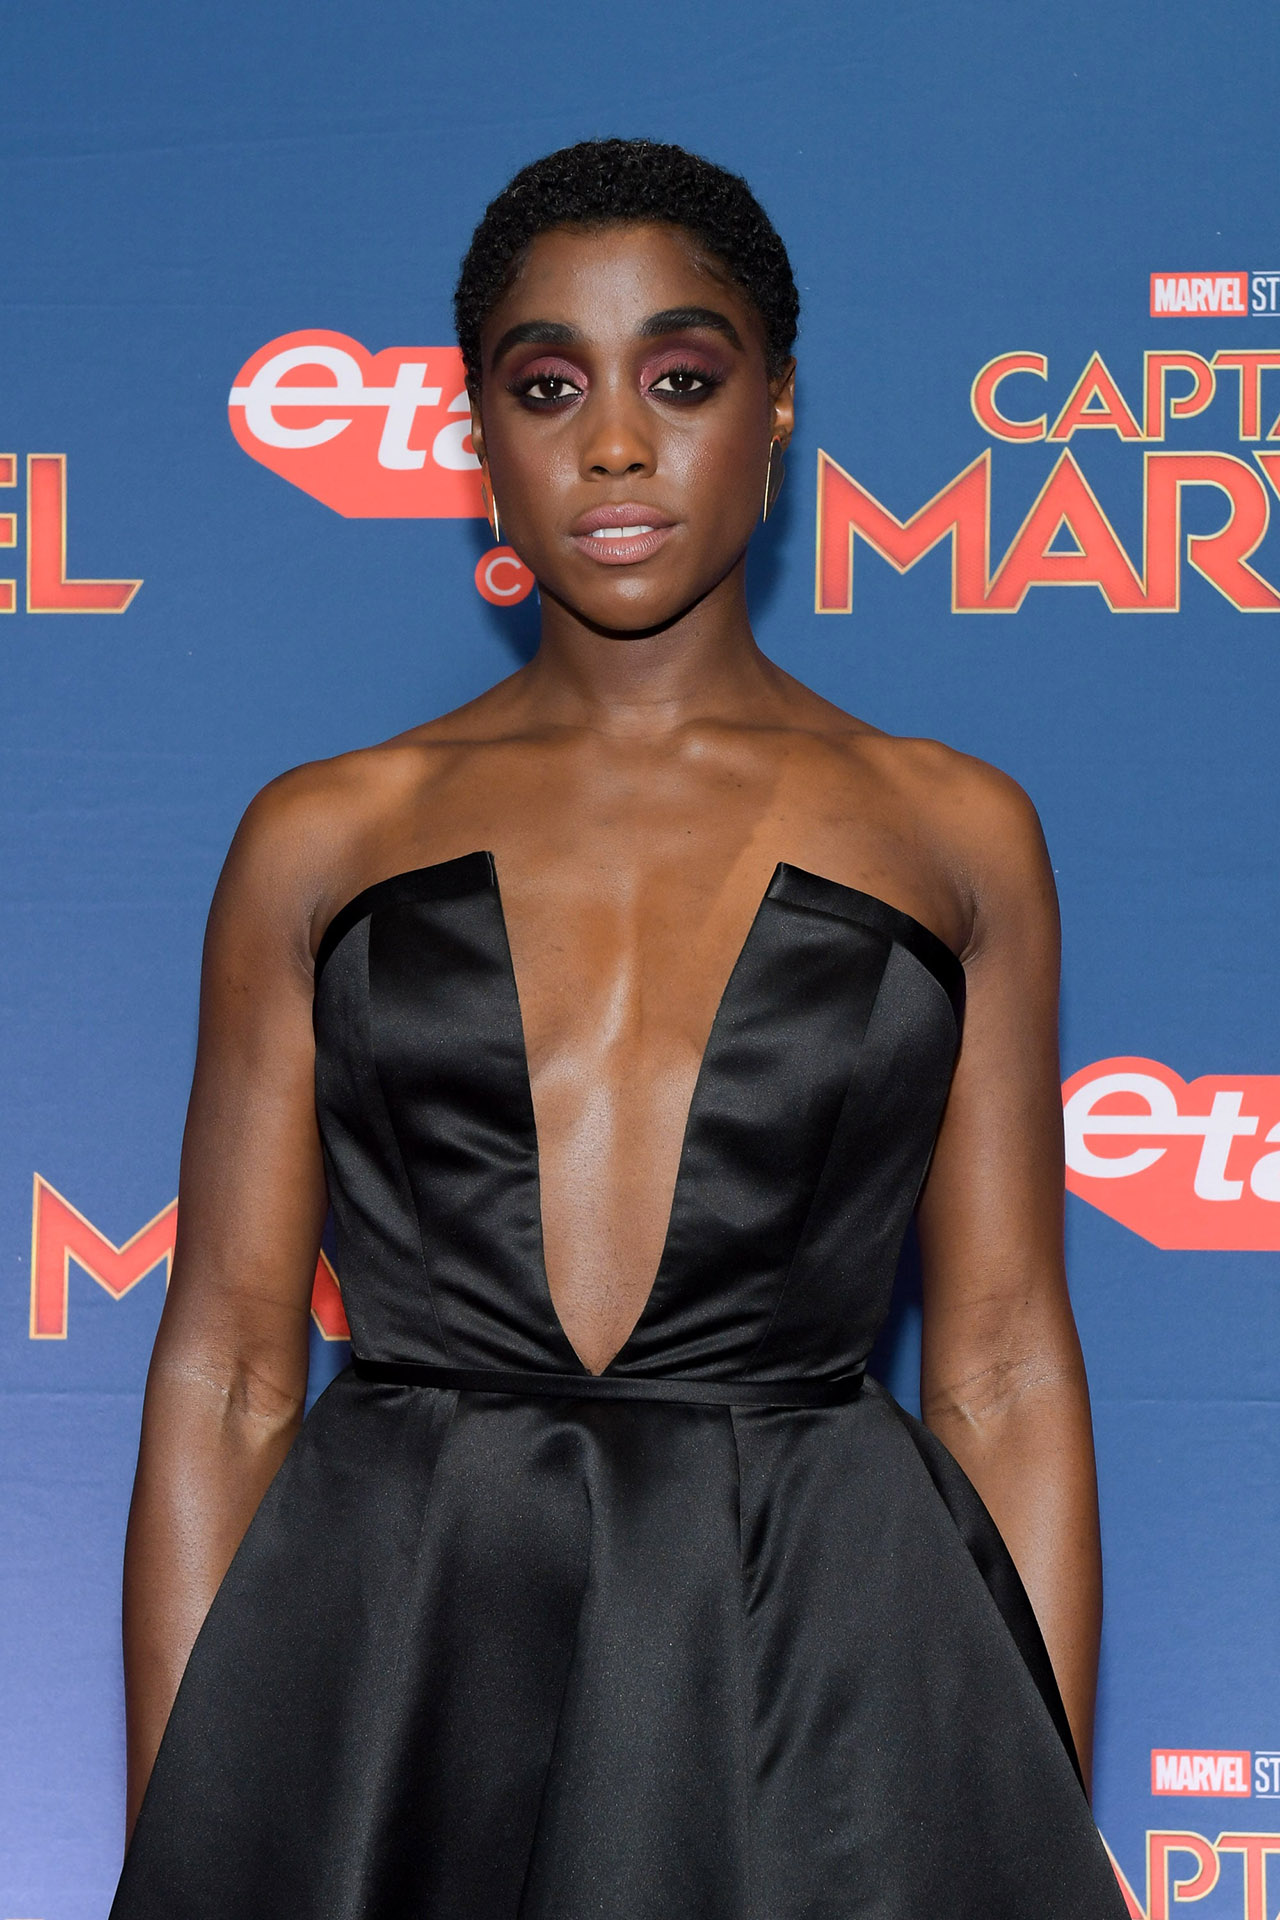 Lashana Lynch Marvel Studios Captain Marvel